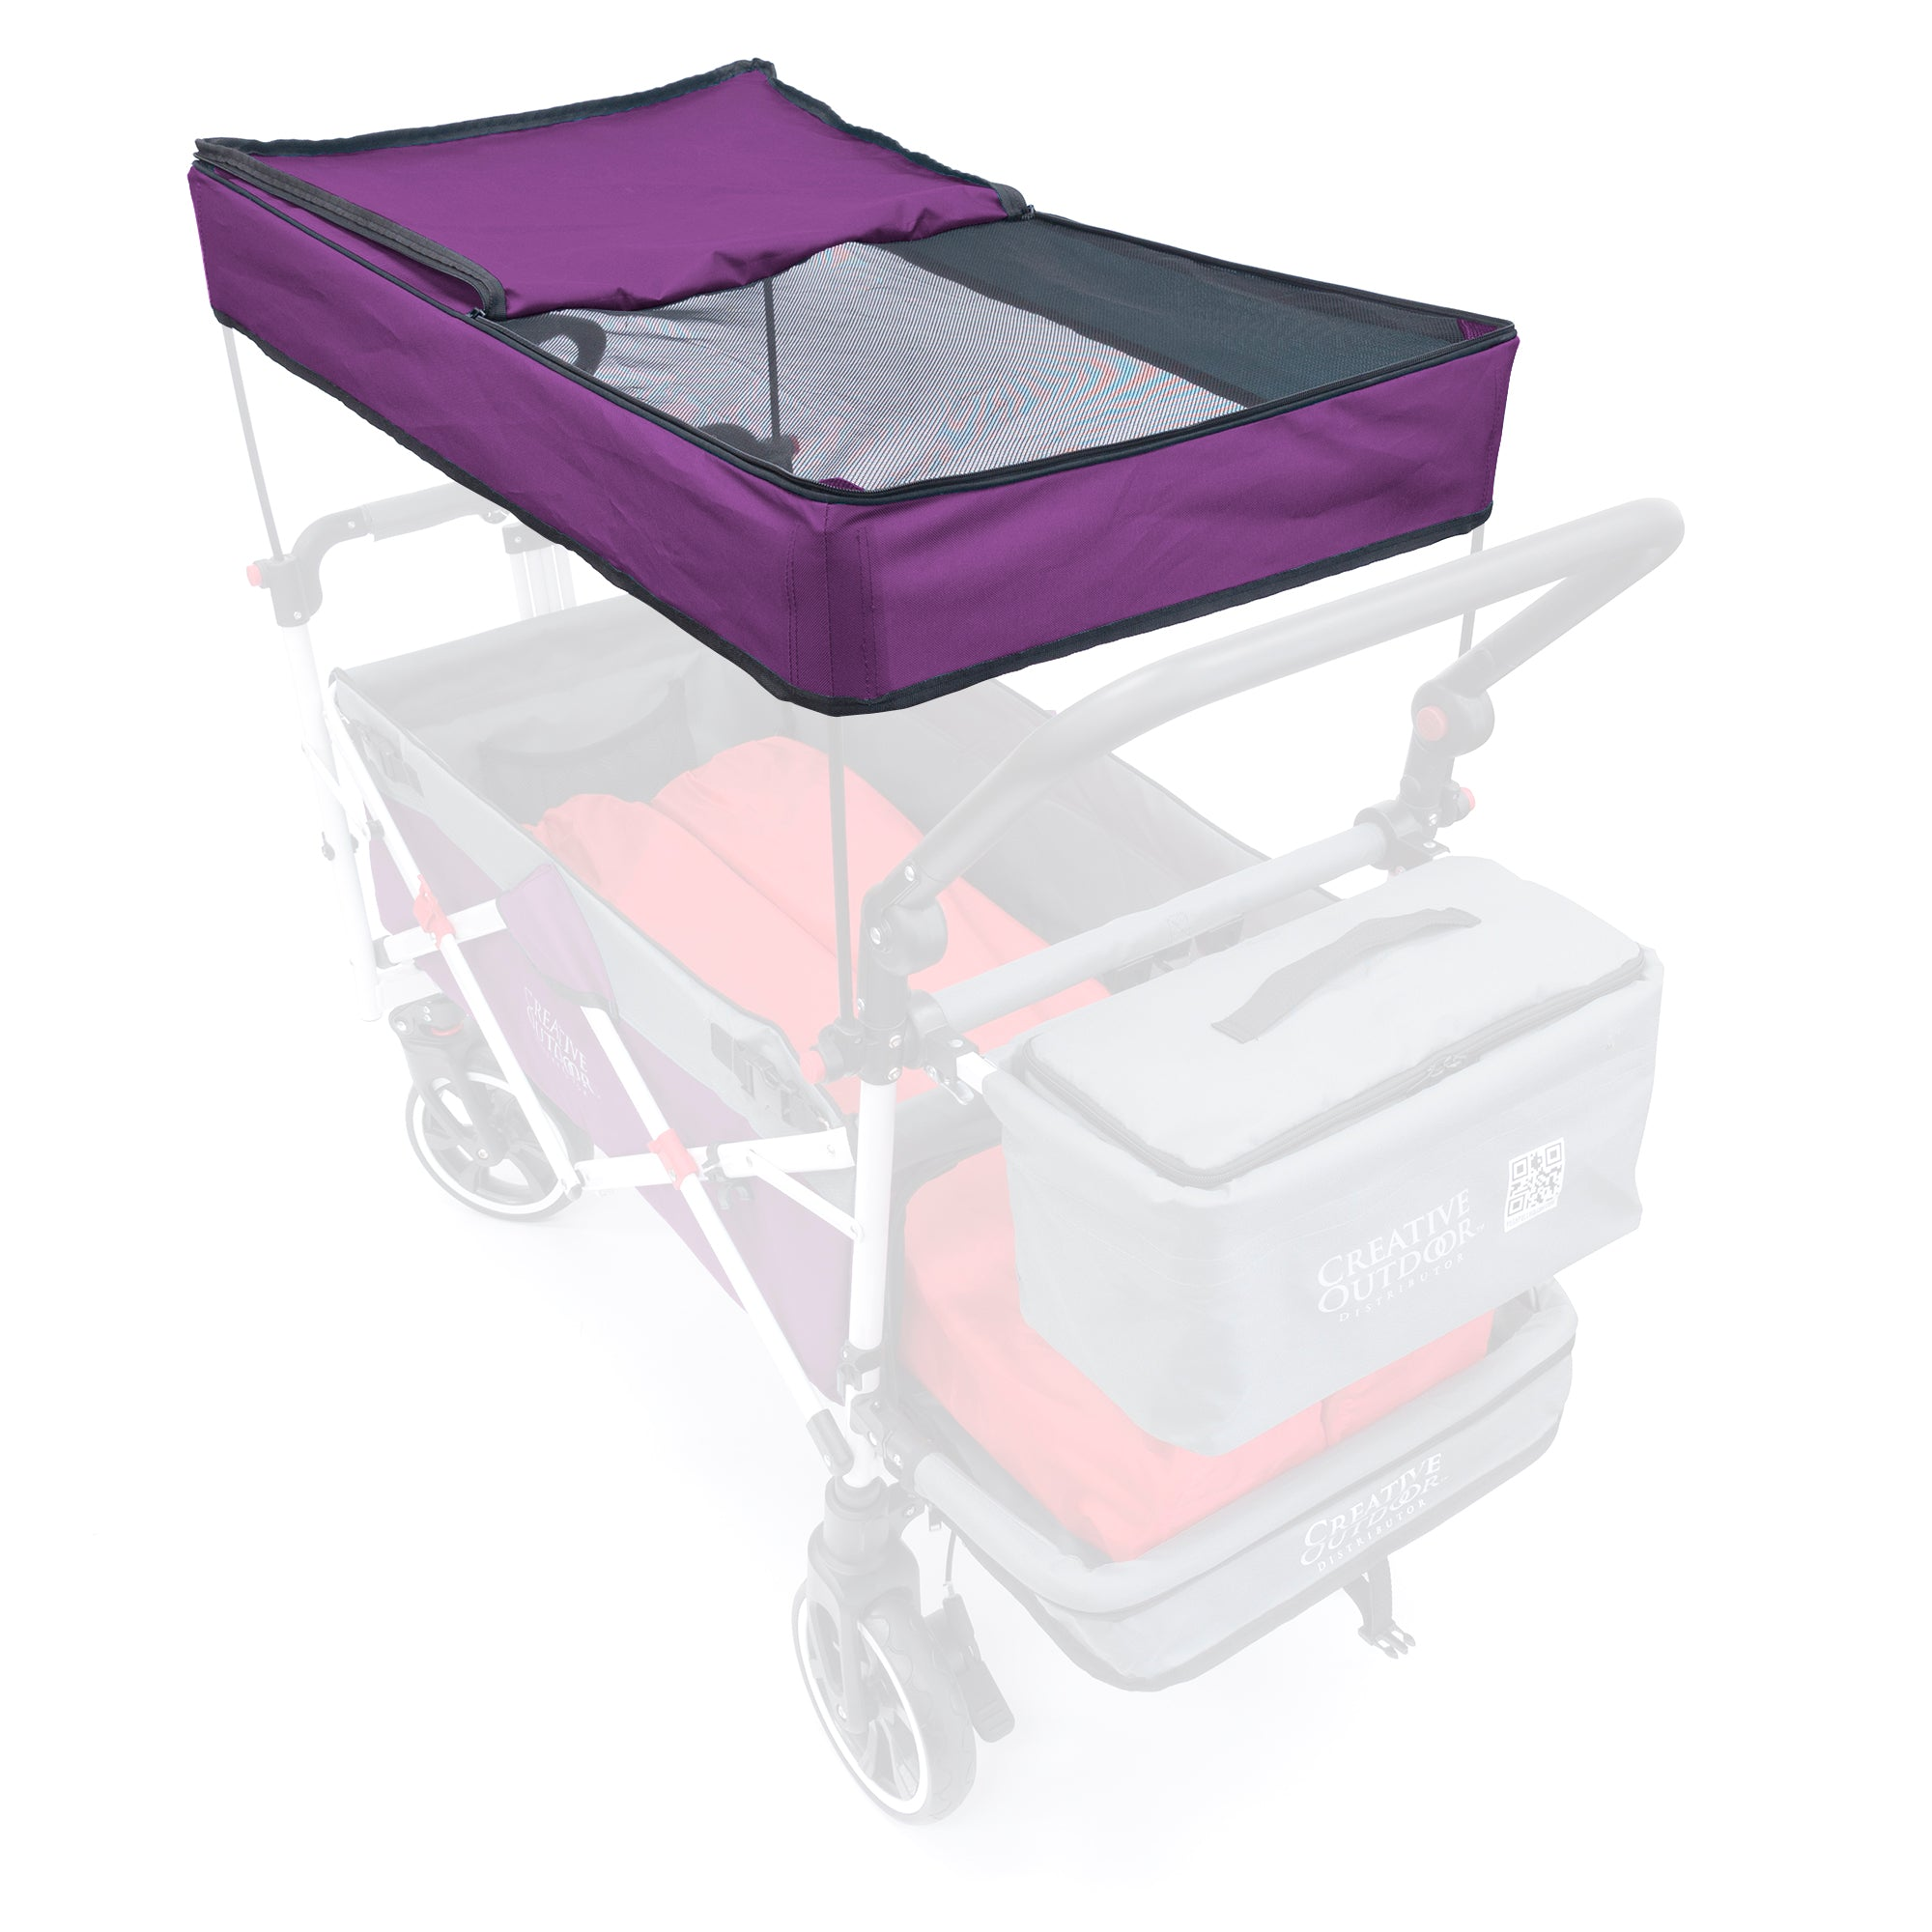 Push Pull Folding Wagon Titanium Series Replacement Canopy - Purple